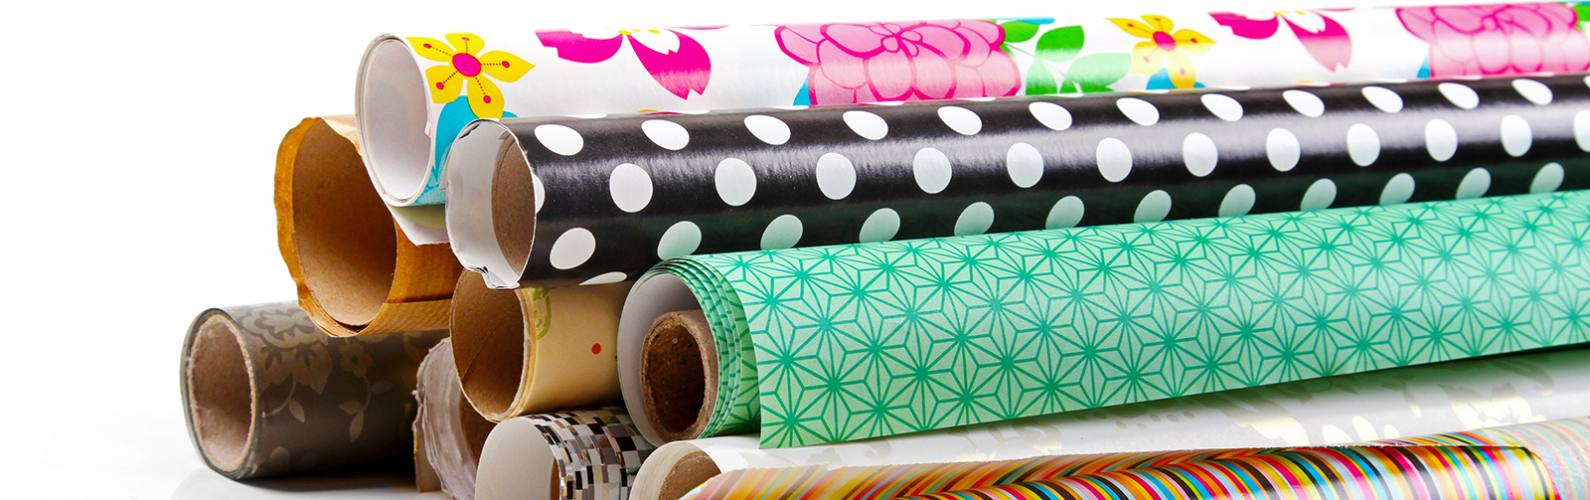 10 ways to reuse wrapping paper